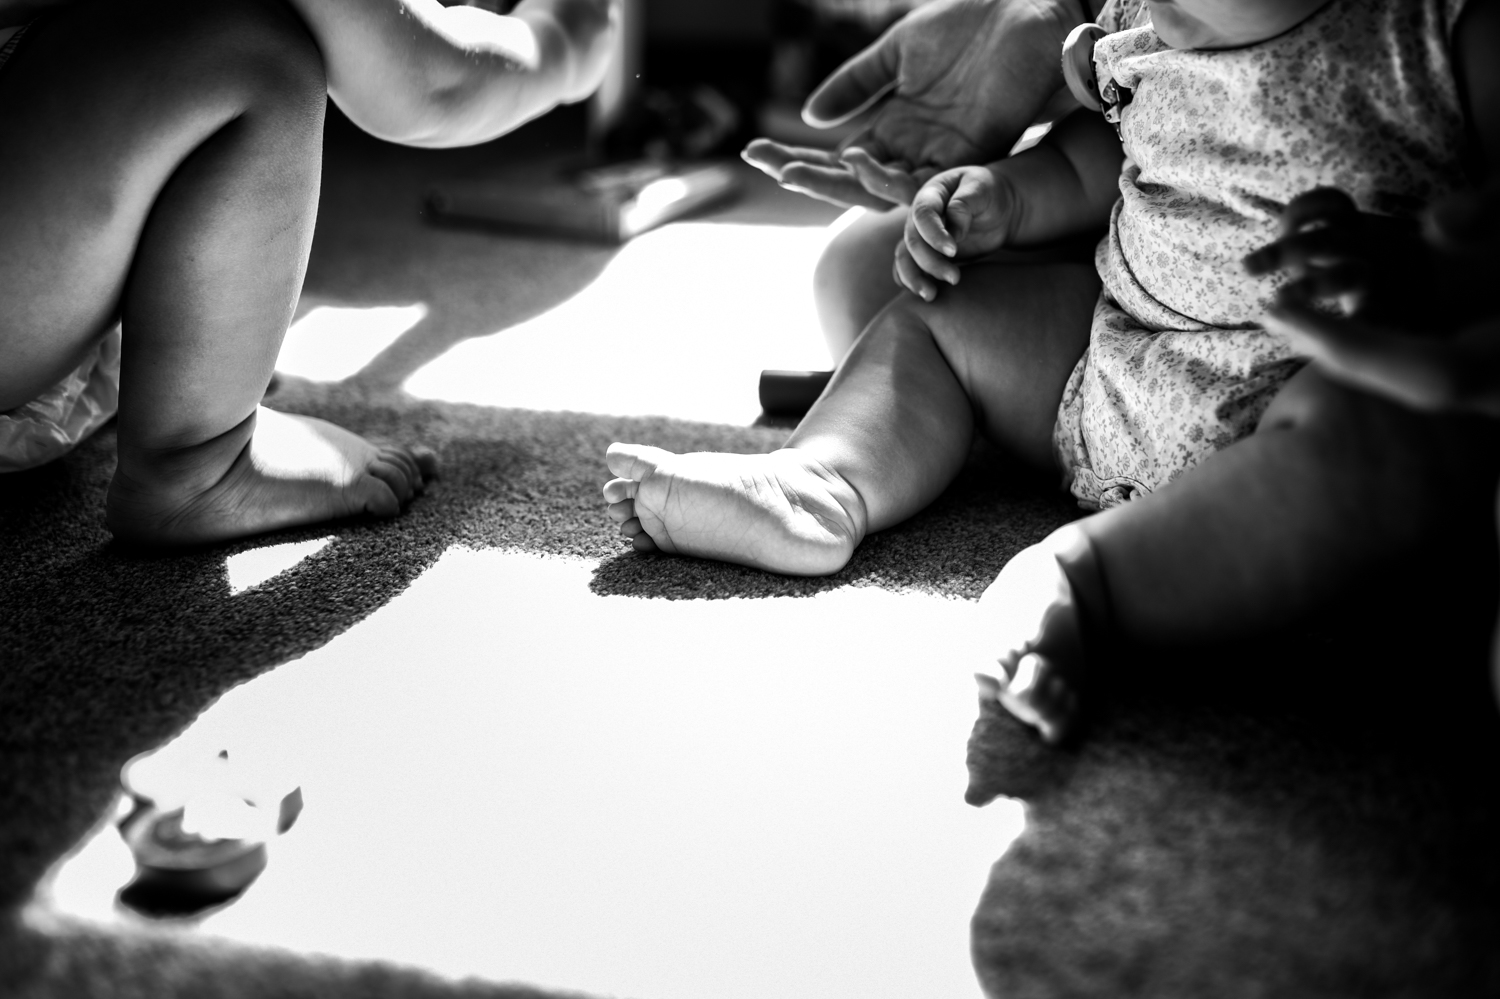 A close up shot of a childrens and mothers feet in black and white with light dappling through the middle.